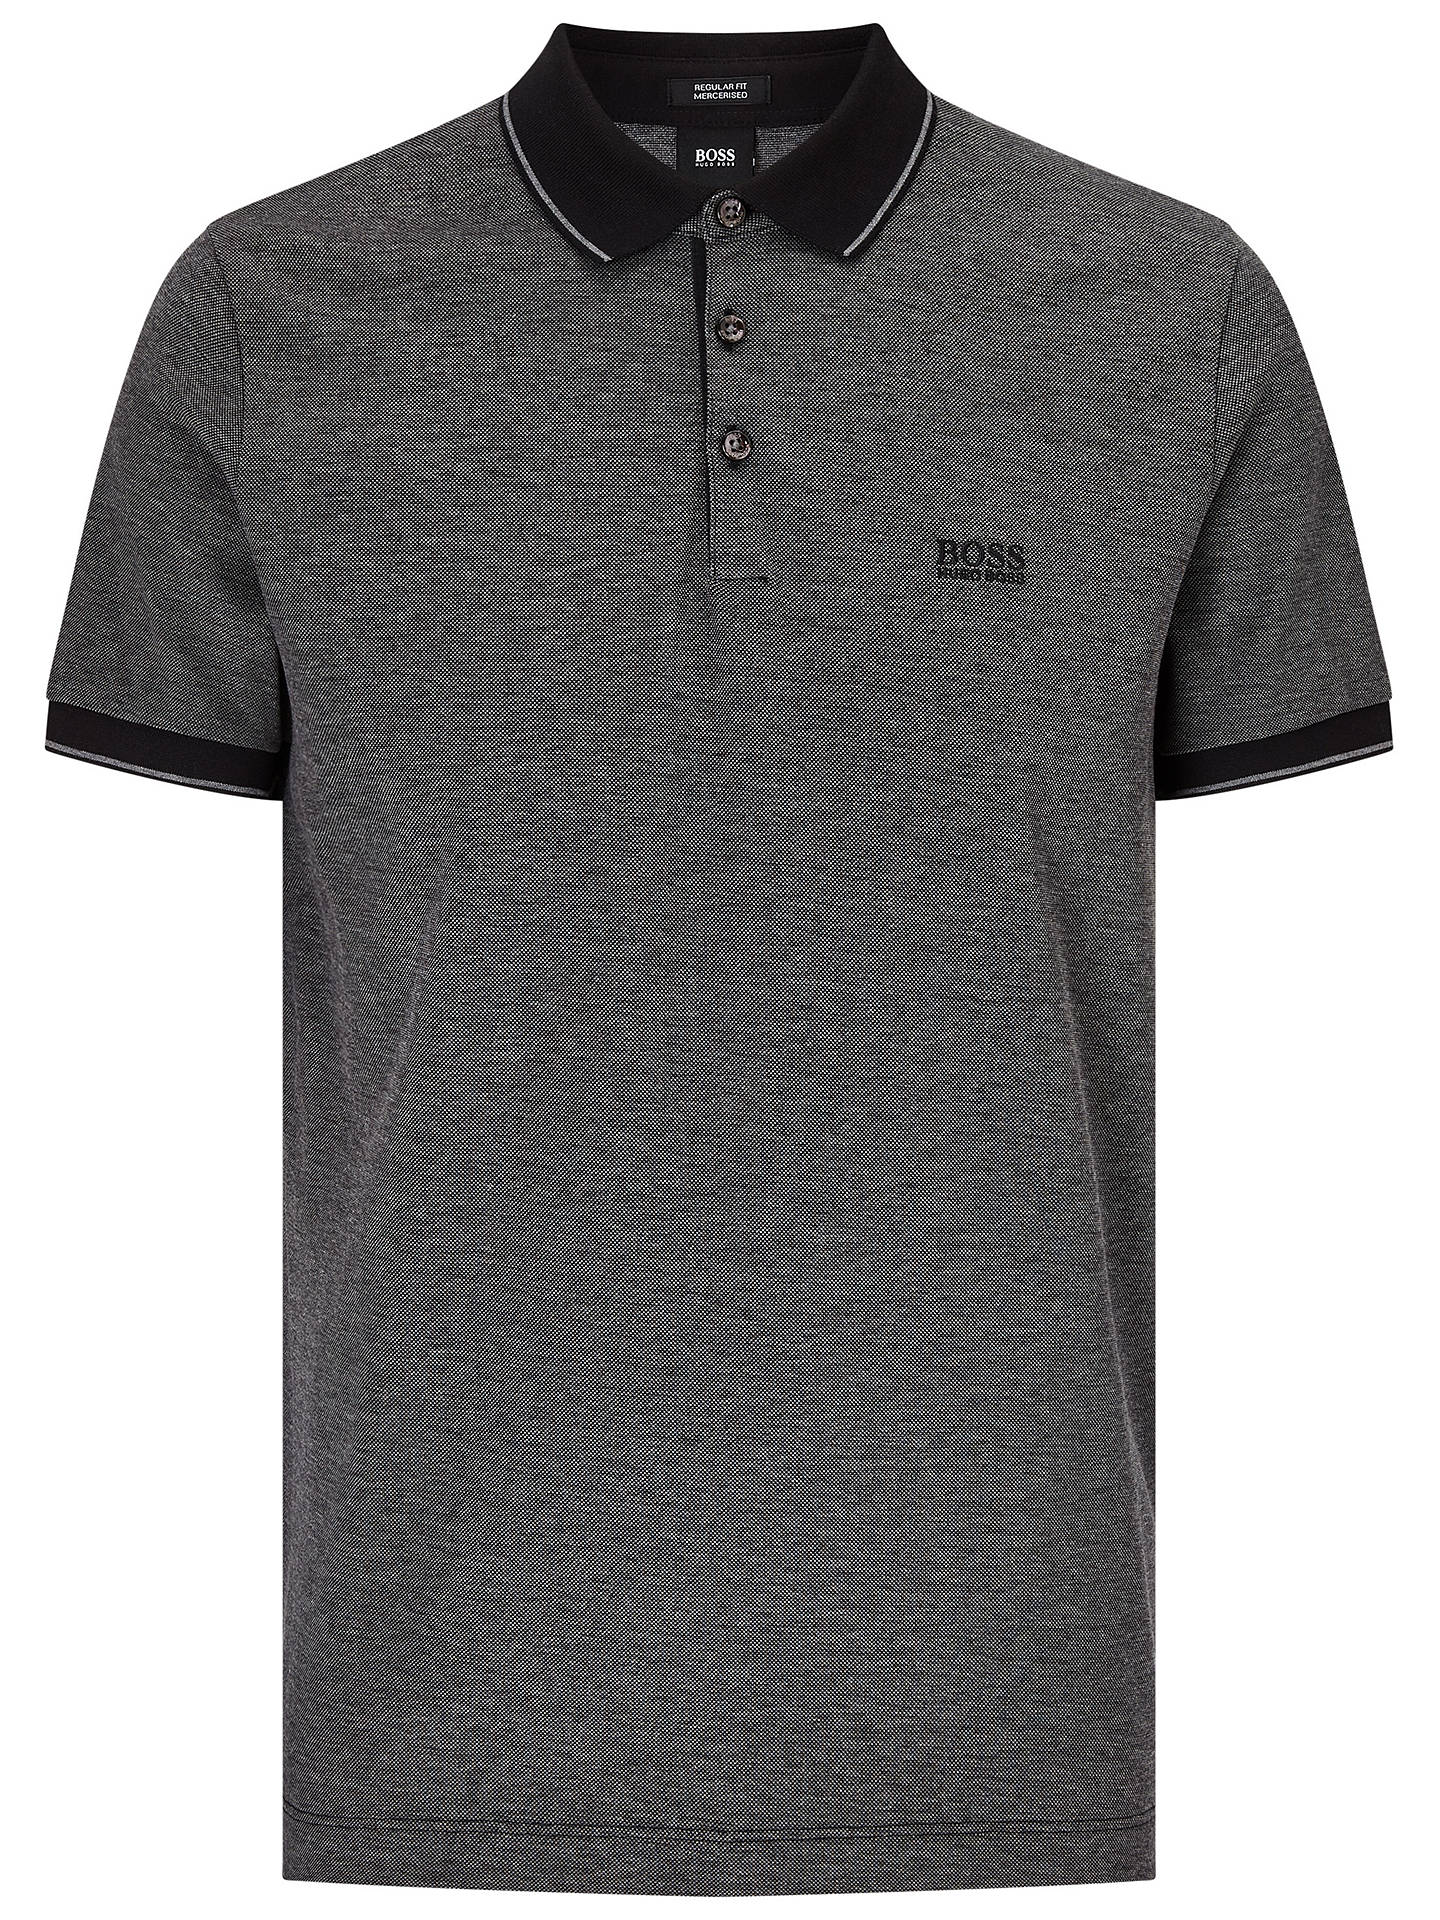 cb1ec3a7 ... Buy BOSS Prout Short Sleeve Polo Shirt, Black, S Online at  johnlewis.com ...